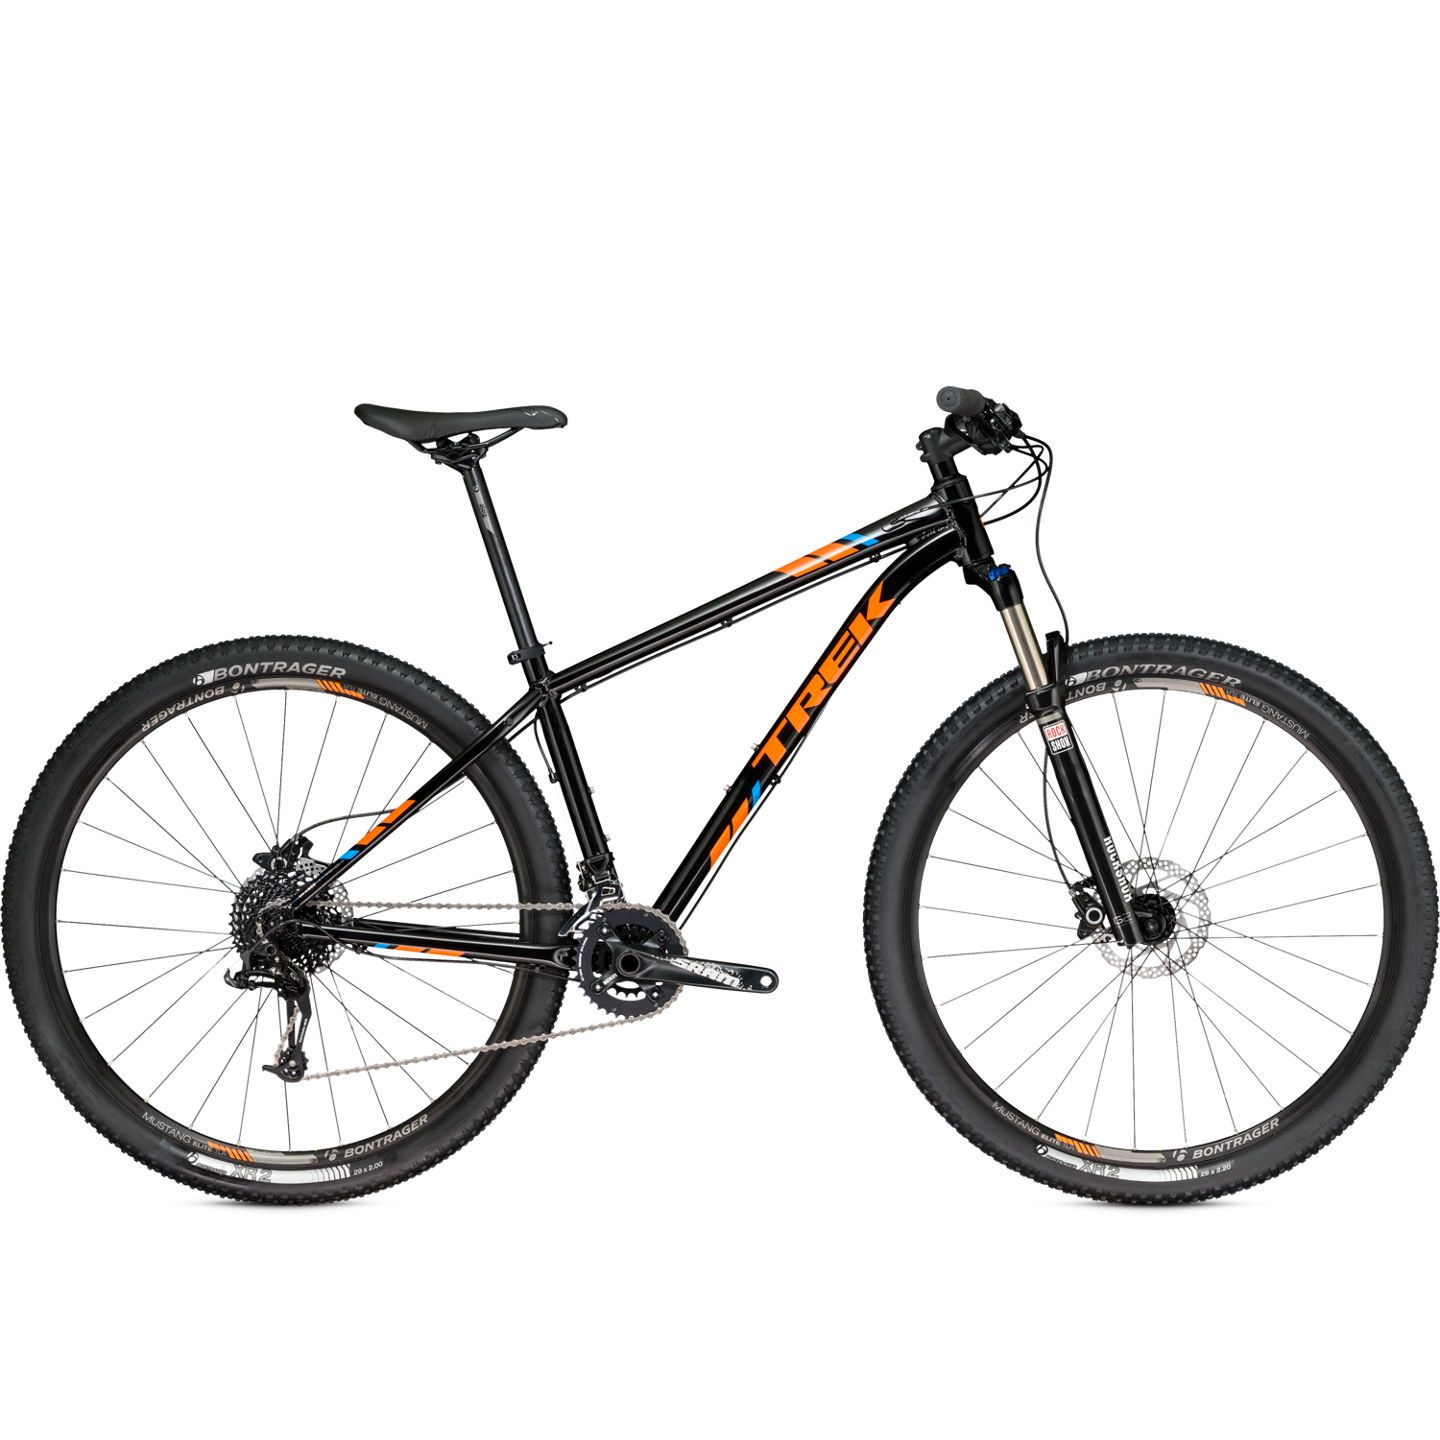 VTT semi-rigide Trek X-Caliber 8 Noir/Orange 2017 - 17.5\